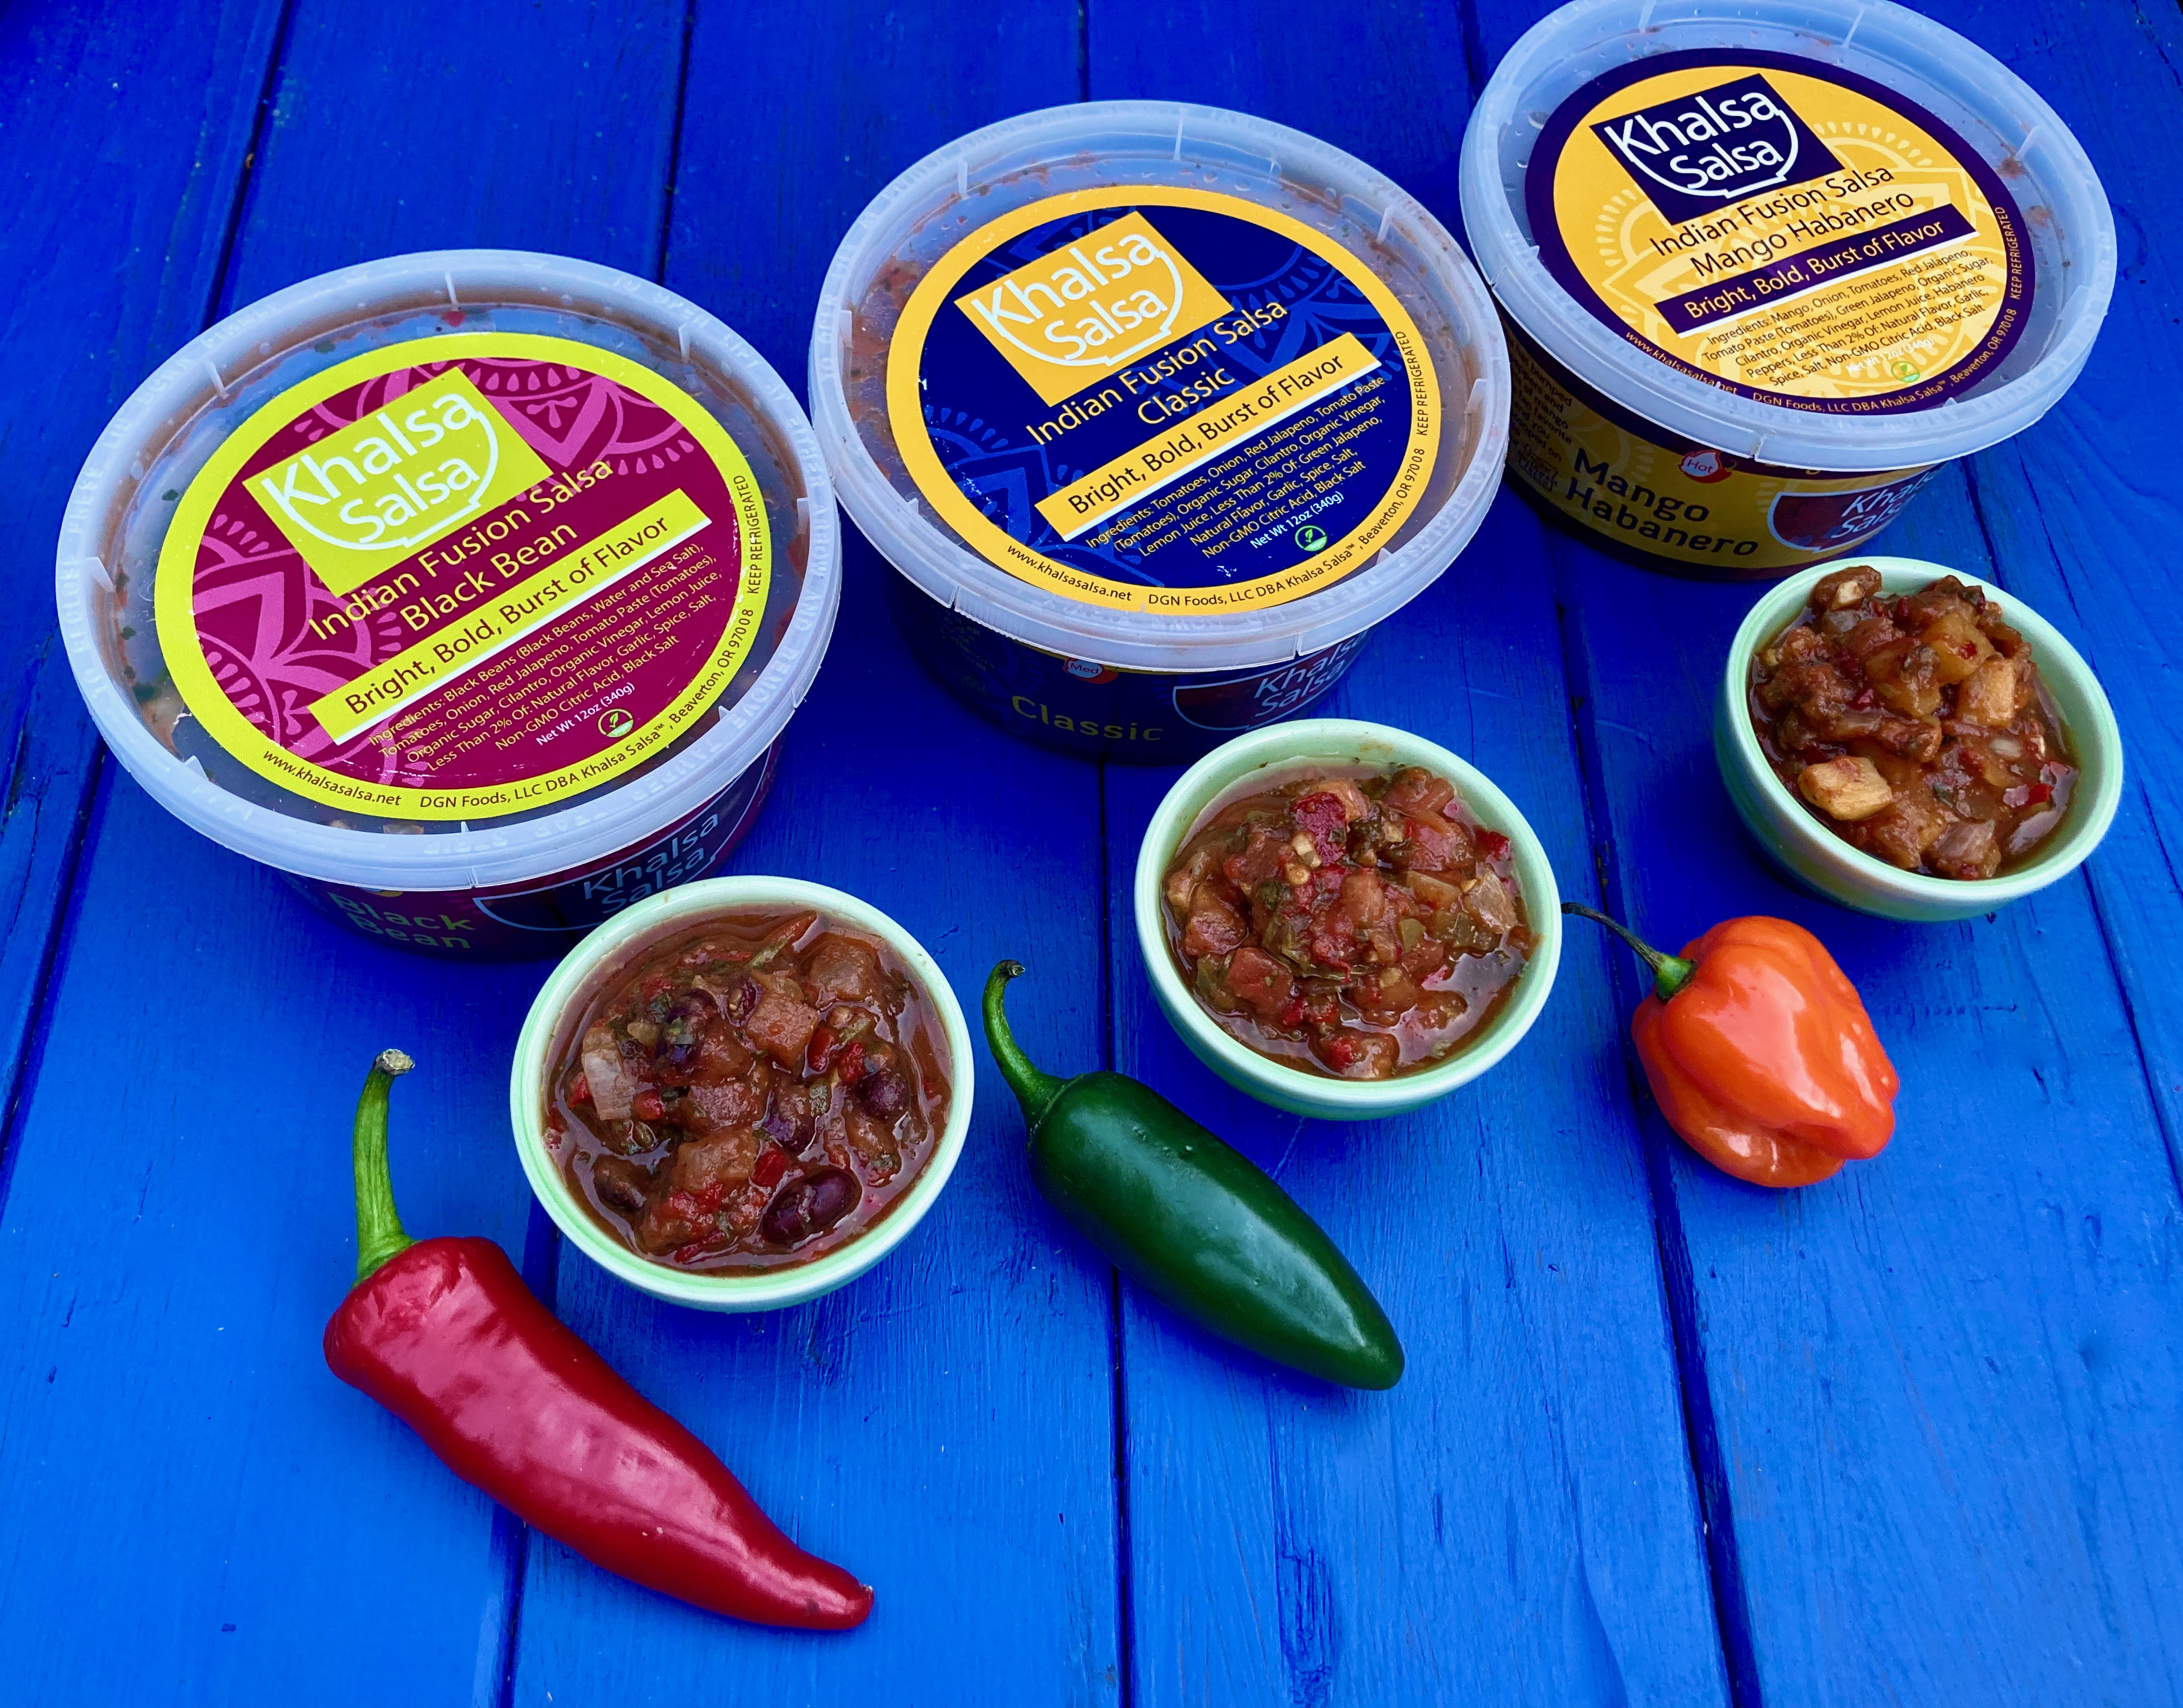 Khalsa Salsa, Portland Based BIPOC Woman Owned Business Launches New Packaging For Indian Fusion Line Of Salsas